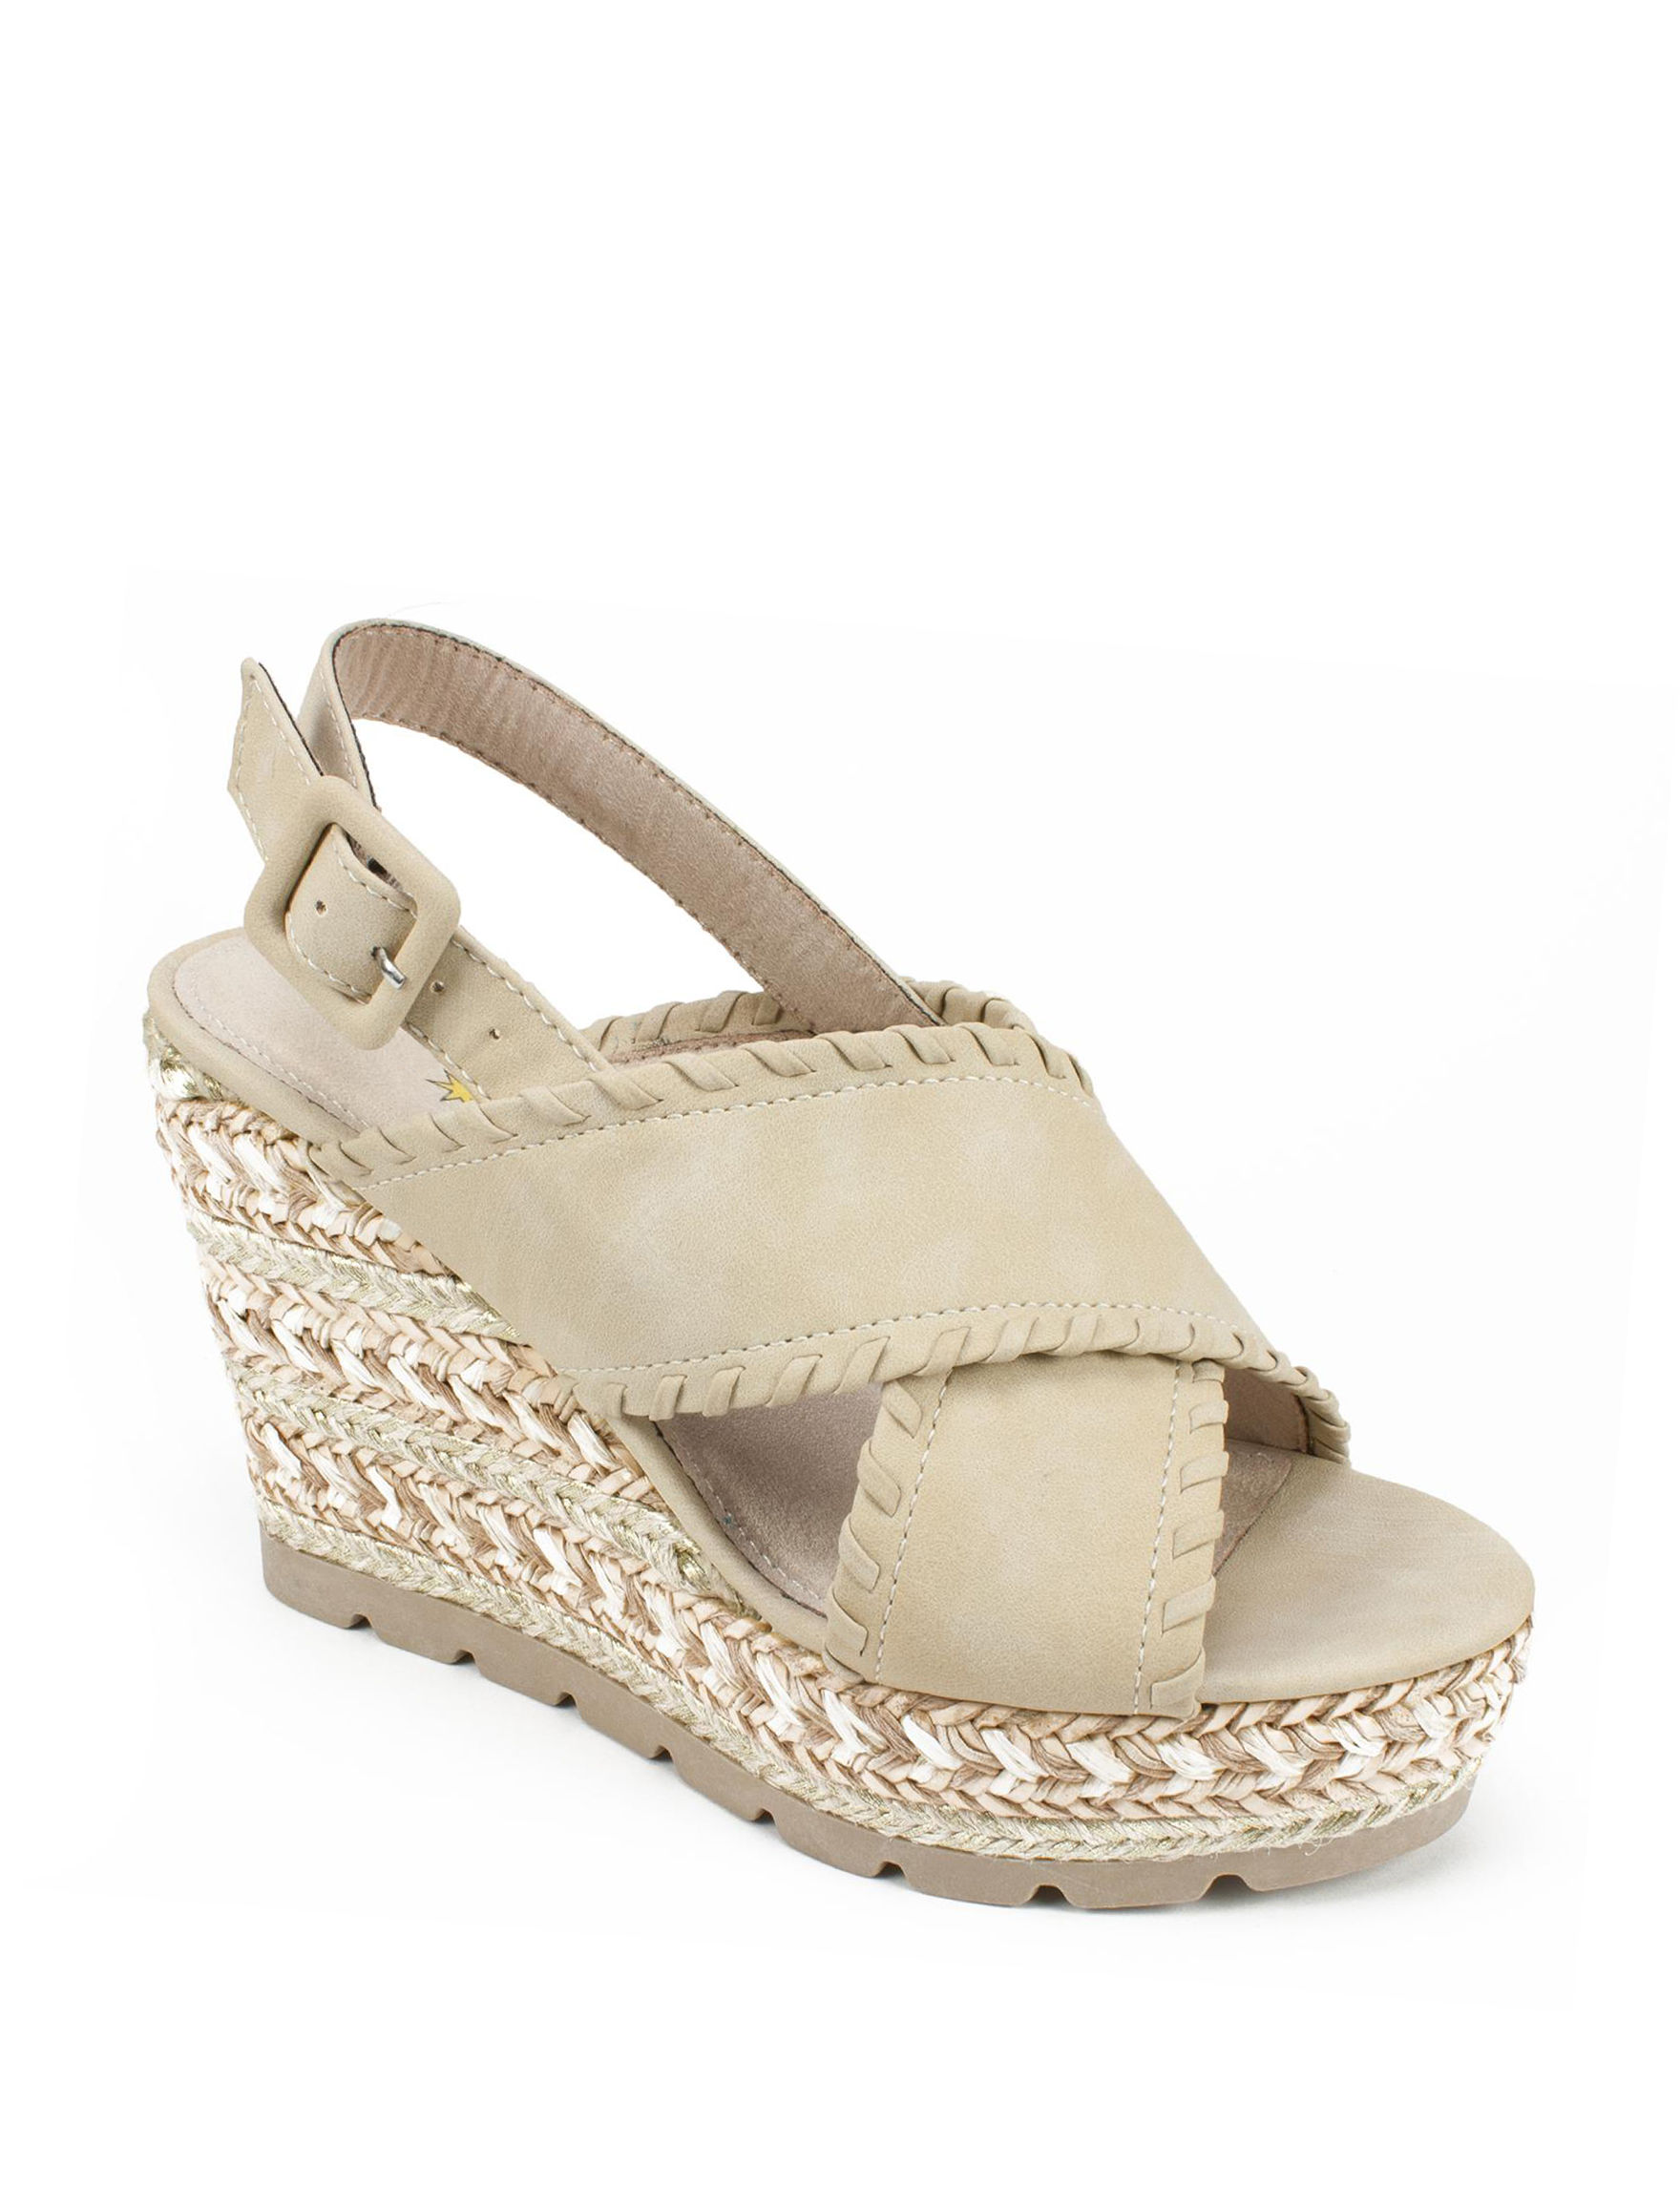 Seven Dials Natural Wedge Sandals